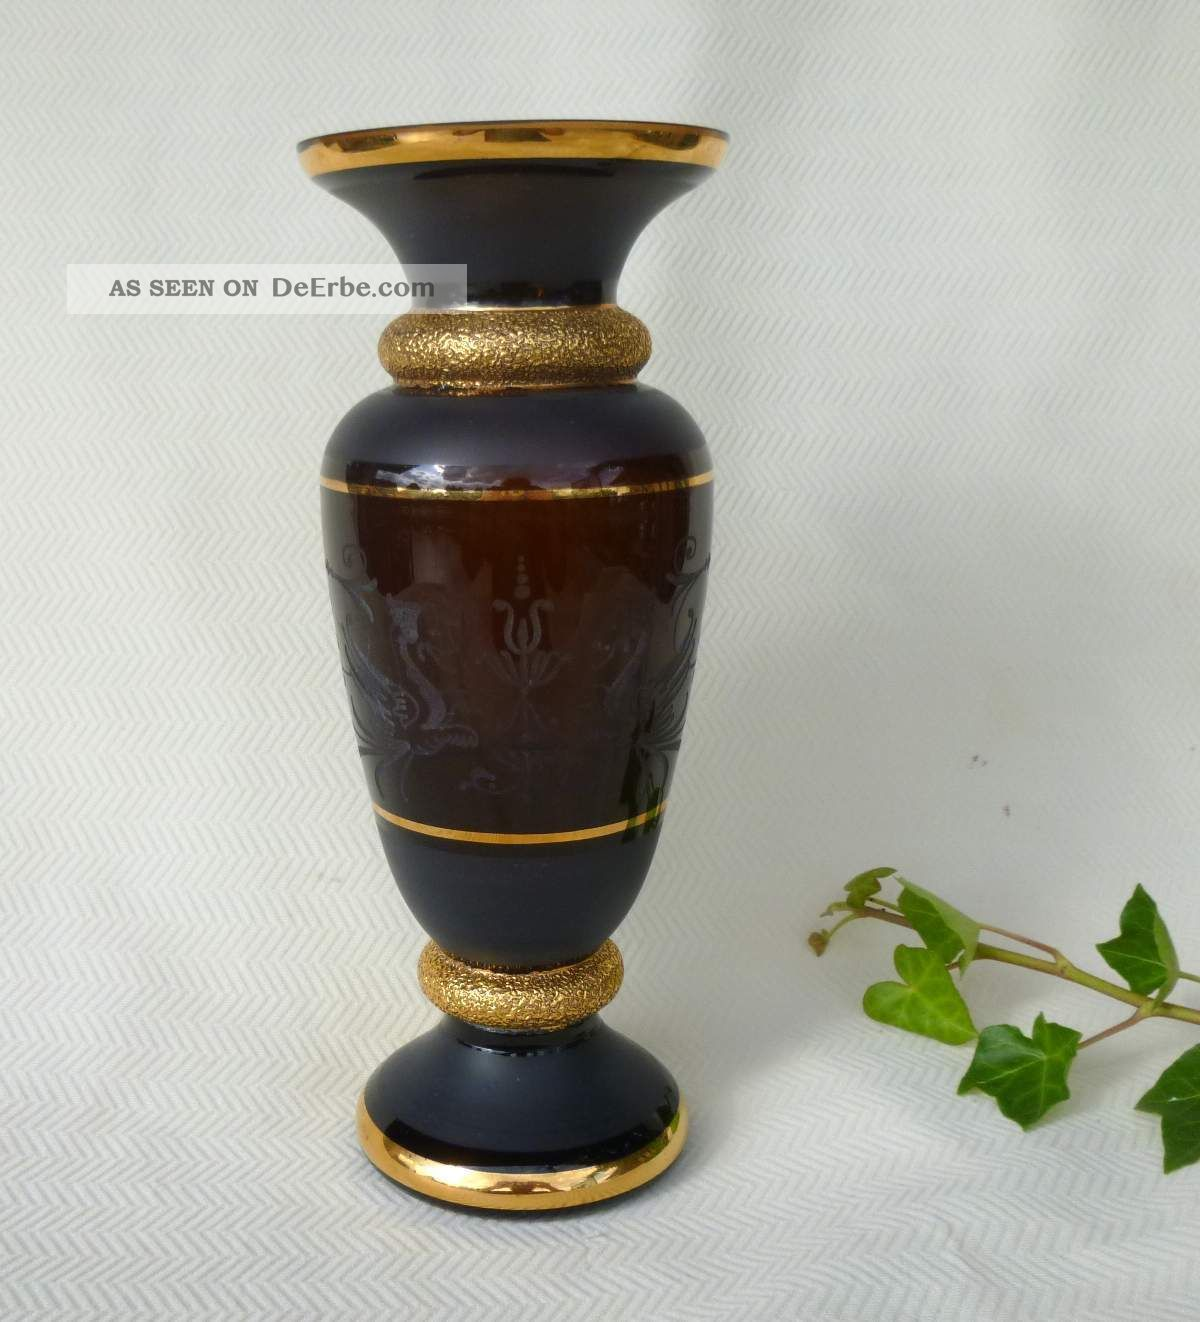 uralte entz ckende vase schwarzglas gold handgeschliffen b hmen 1899. Black Bedroom Furniture Sets. Home Design Ideas